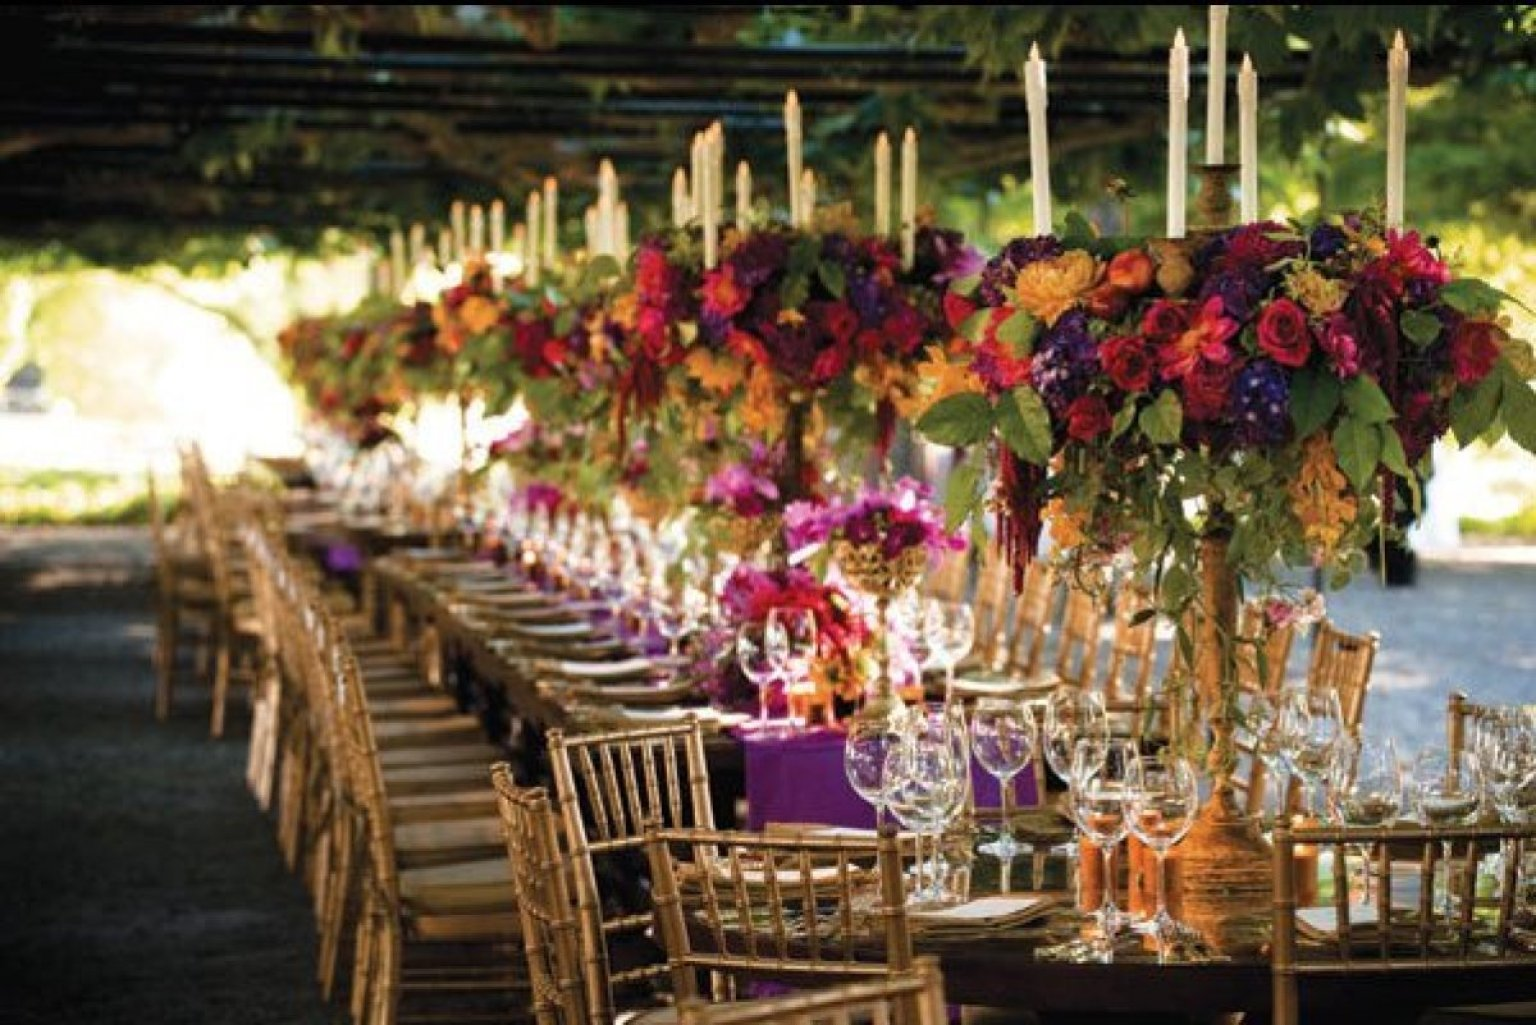 Ideas For Fall Wedding Centerpieces: 25 Incredible Centerpieces For Fall Weddings